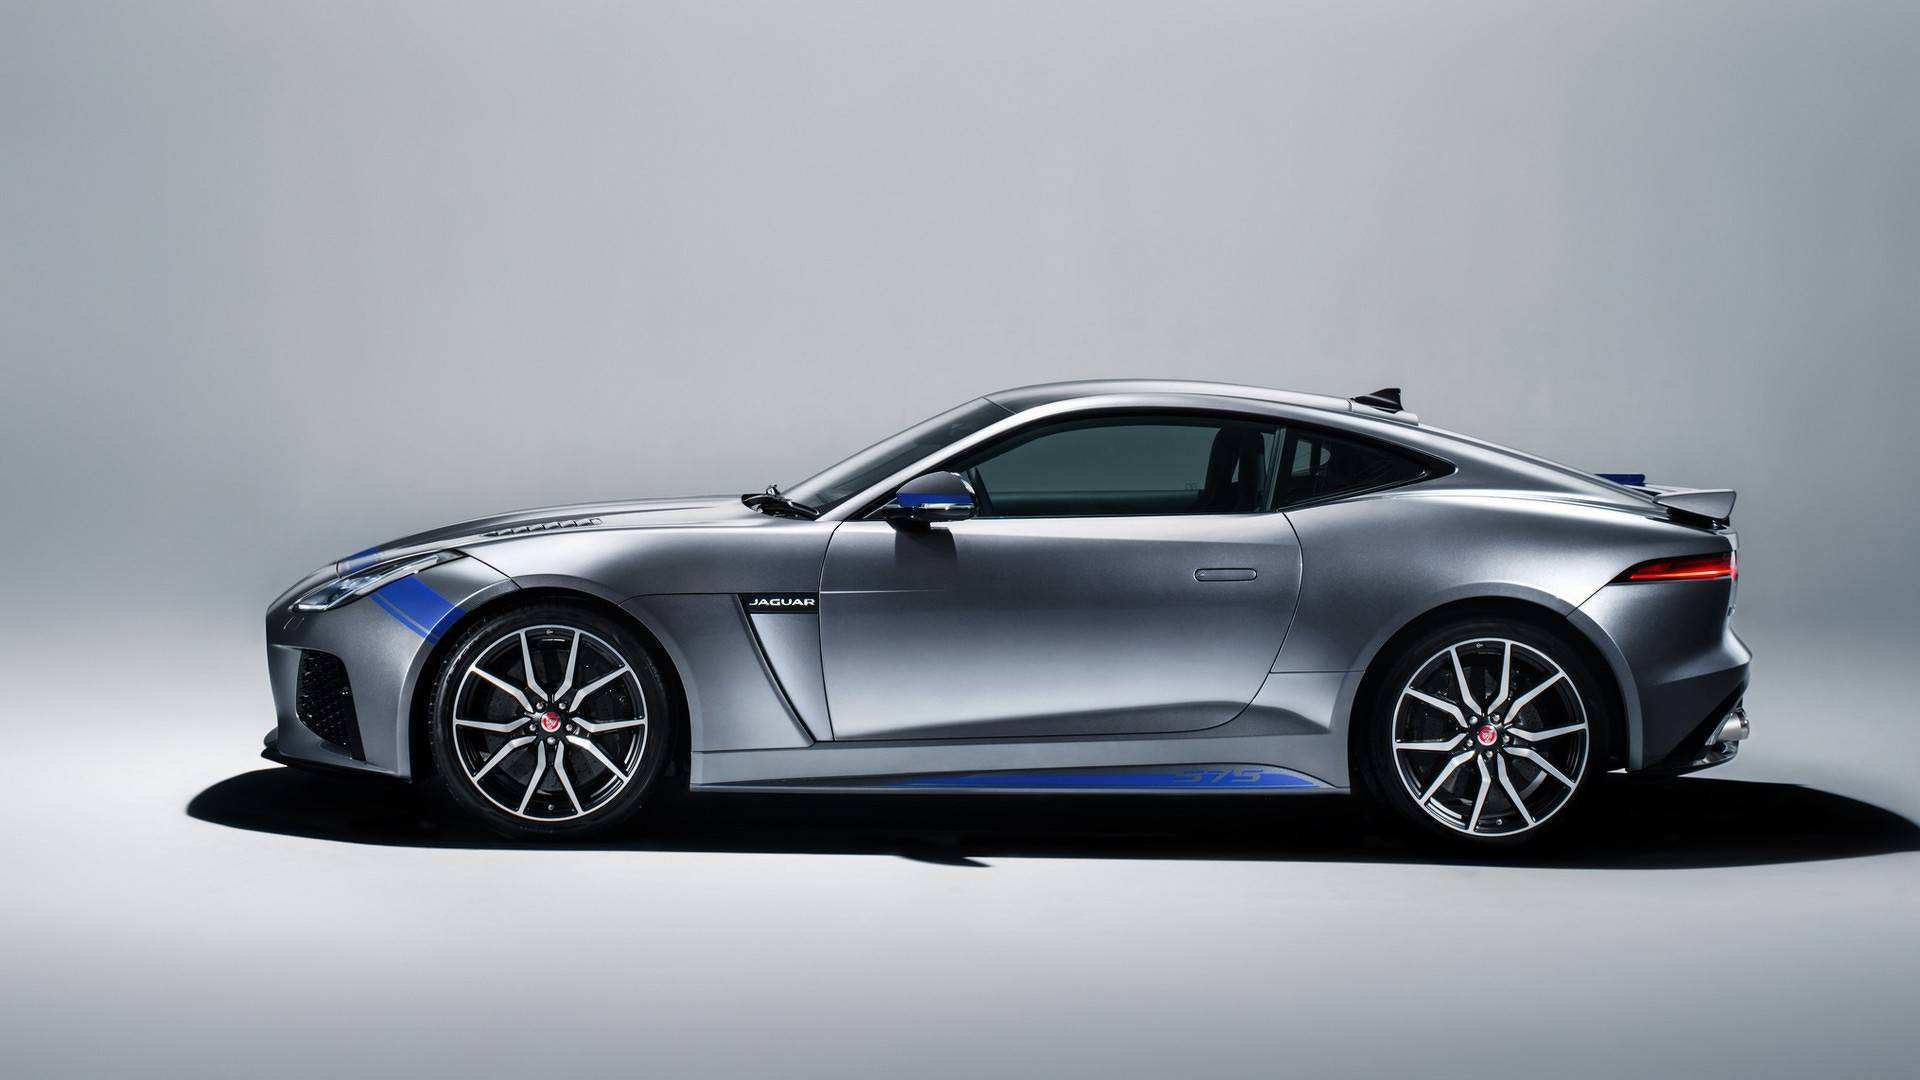 66 Concept of Jaguar Sports Car 2020 Performance and New Engine by Jaguar Sports Car 2020